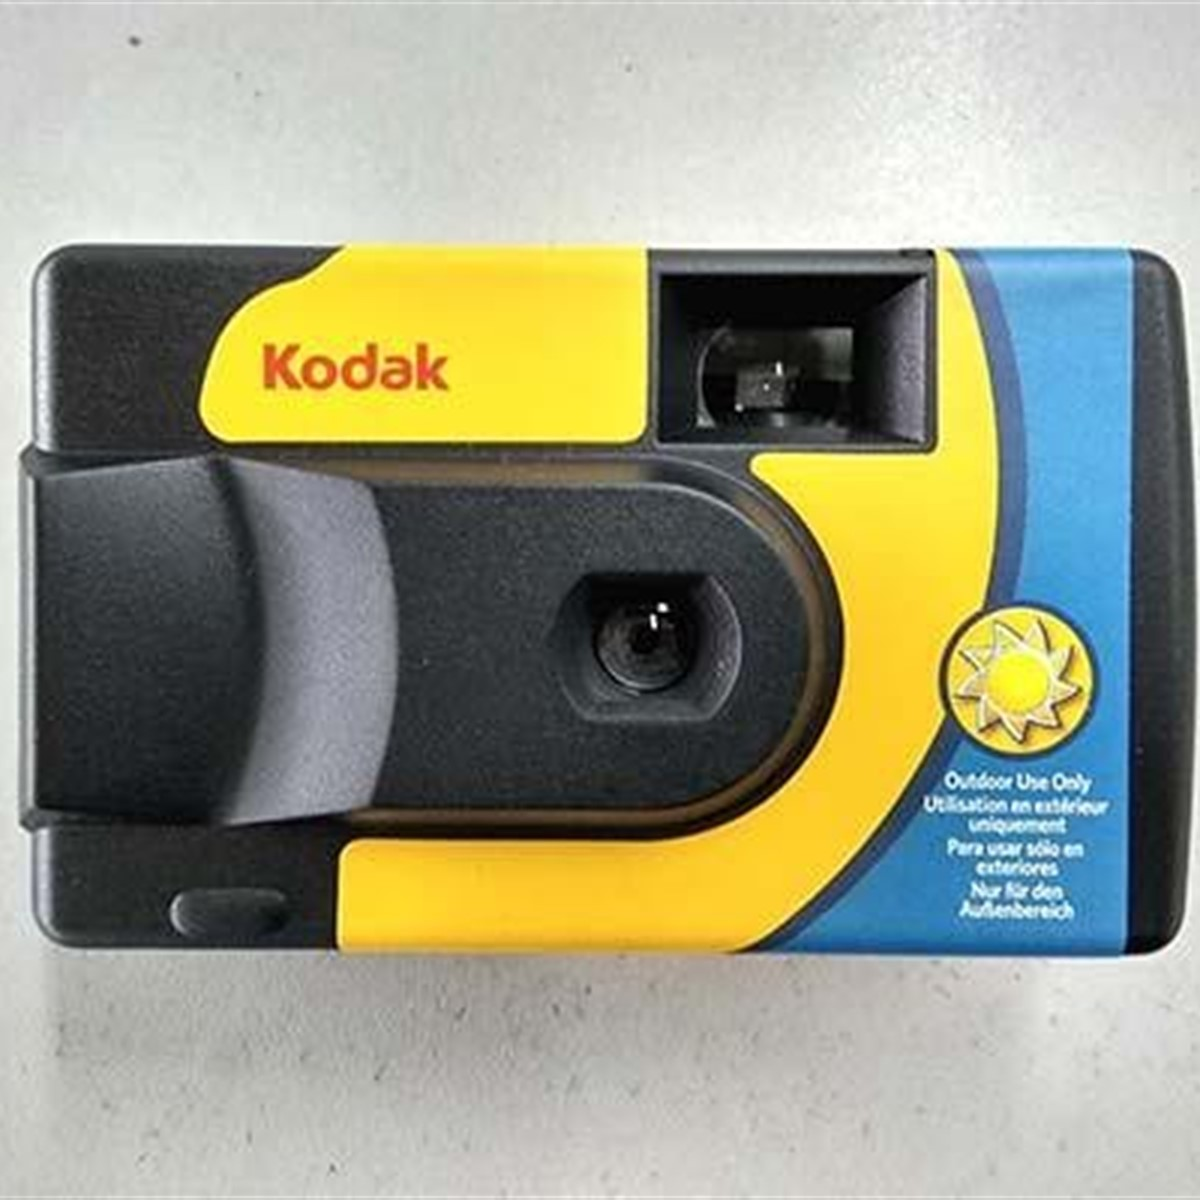 Kodak Daylight Single Use disposable camera launched in Europe ...